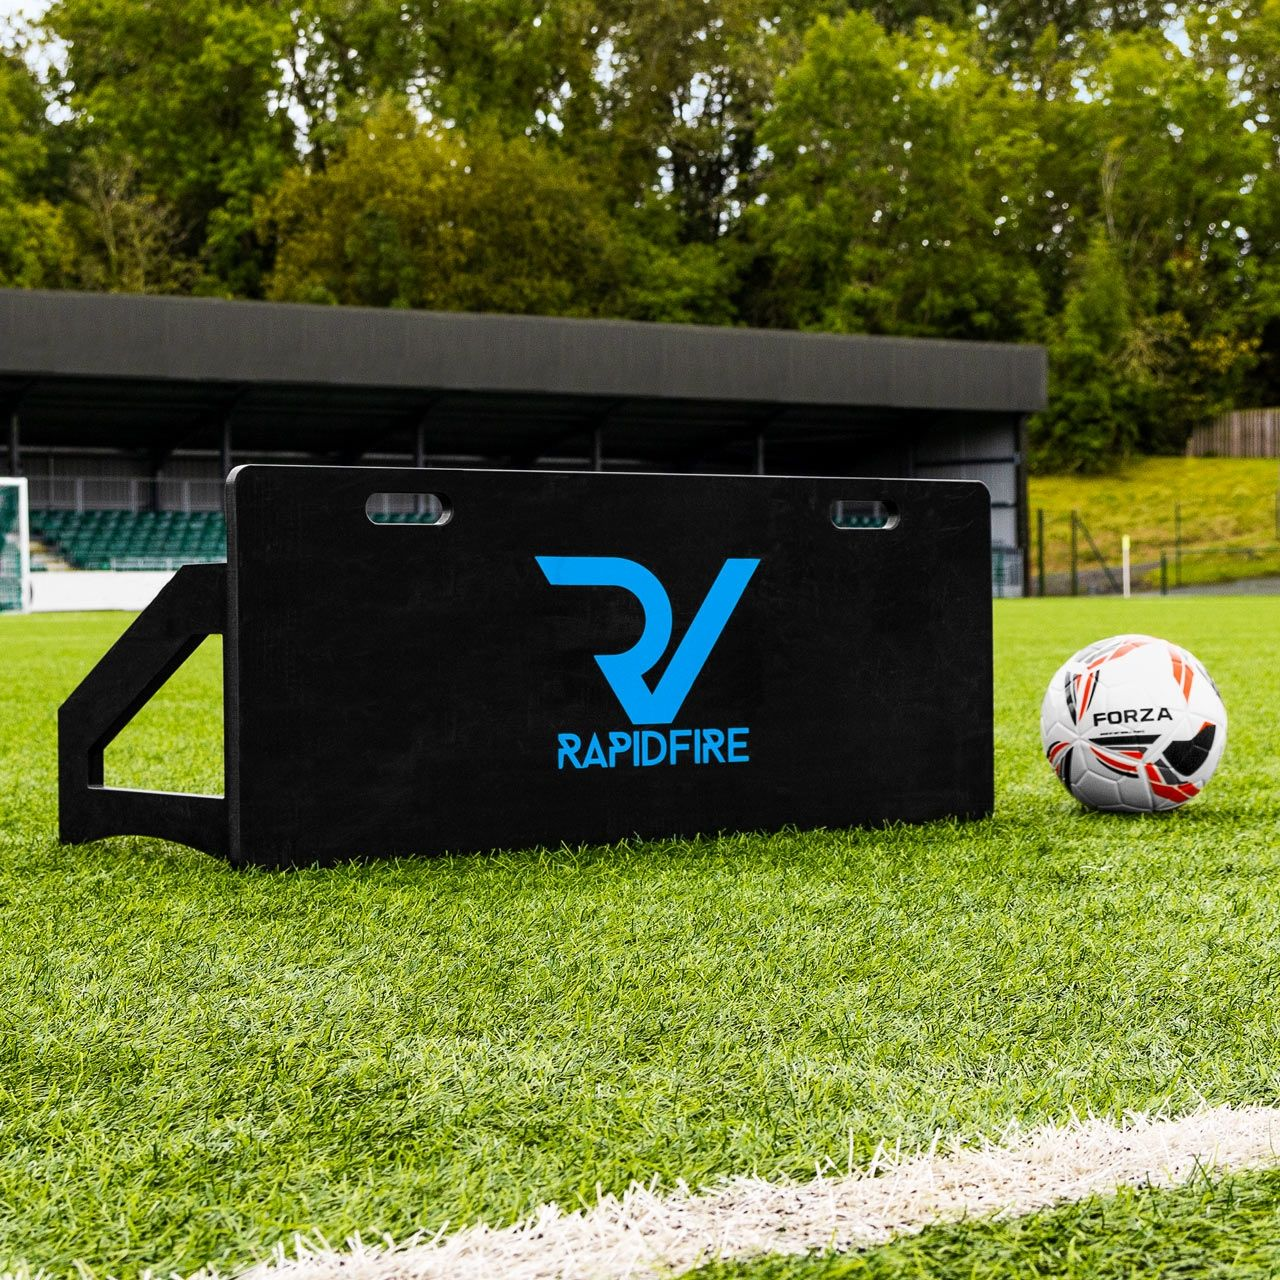 Rapidfire Soccer Rebound Board In 2020 With Images Soccer Training Equipment Rebounding Soccer Training